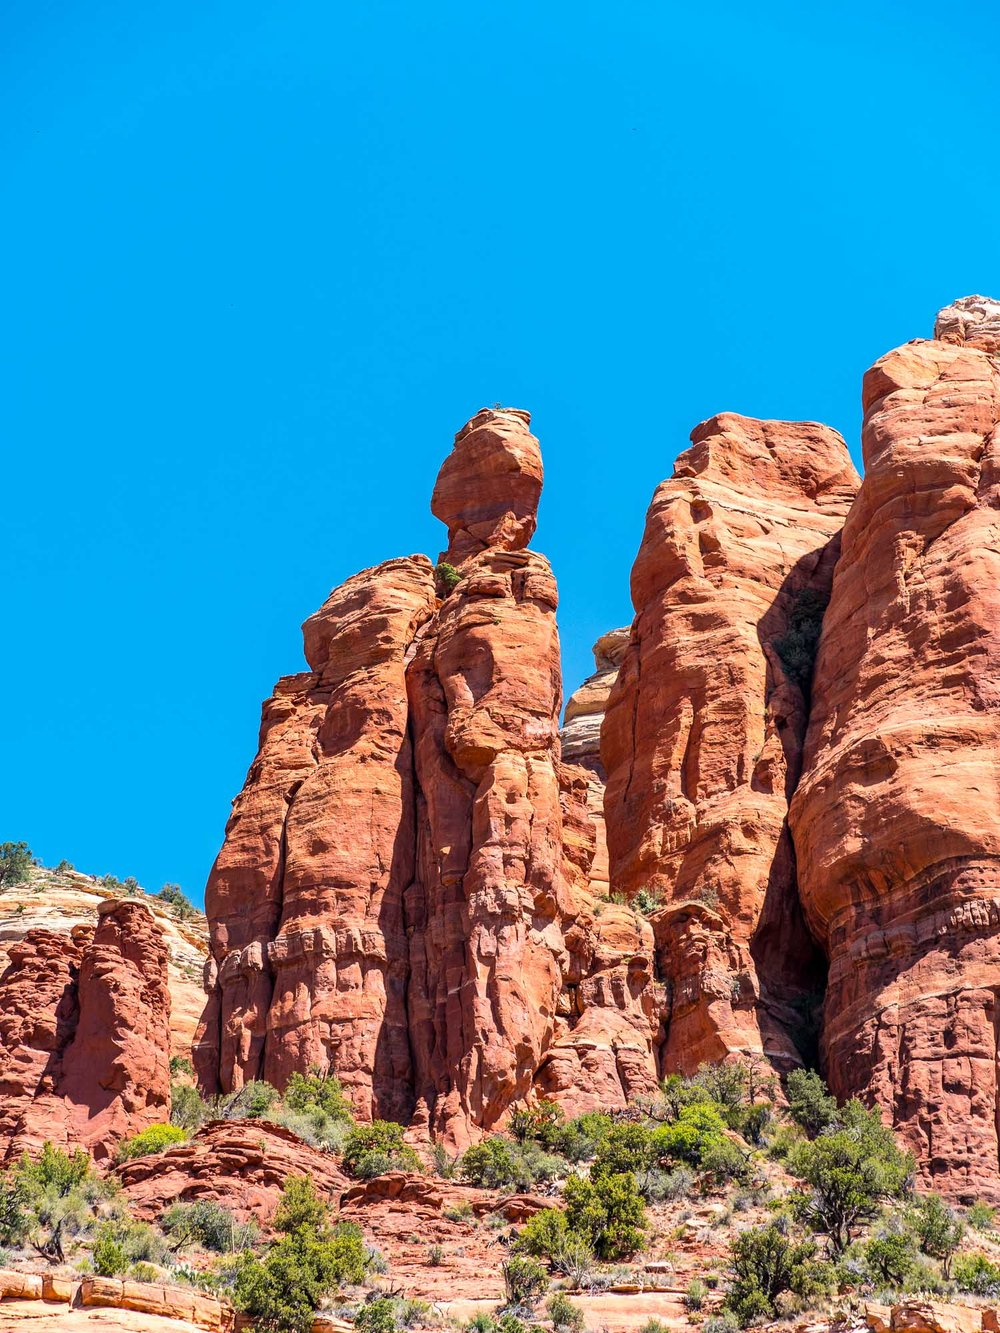 04_sedona1_post_2000px_160504_USA_sedonaAZ_045.jpg